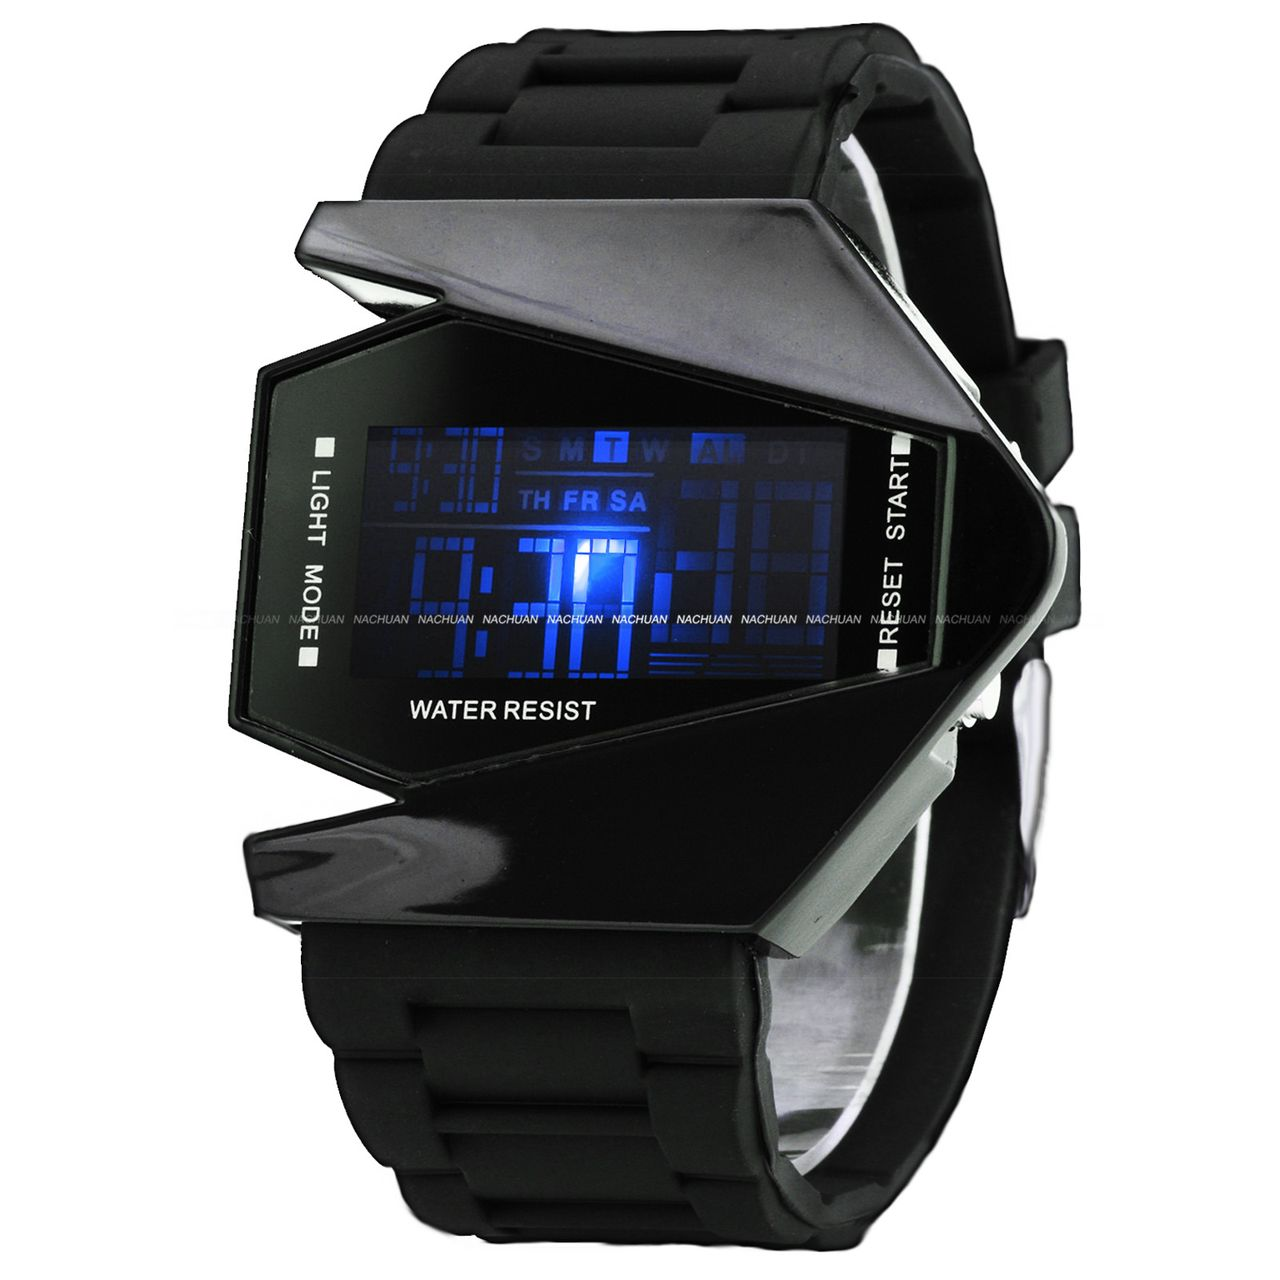 New-Sport-Multicolor-LED-Digital-Date-Alarm-Lady-Mens-Black-Silicone-Wrist-Watch